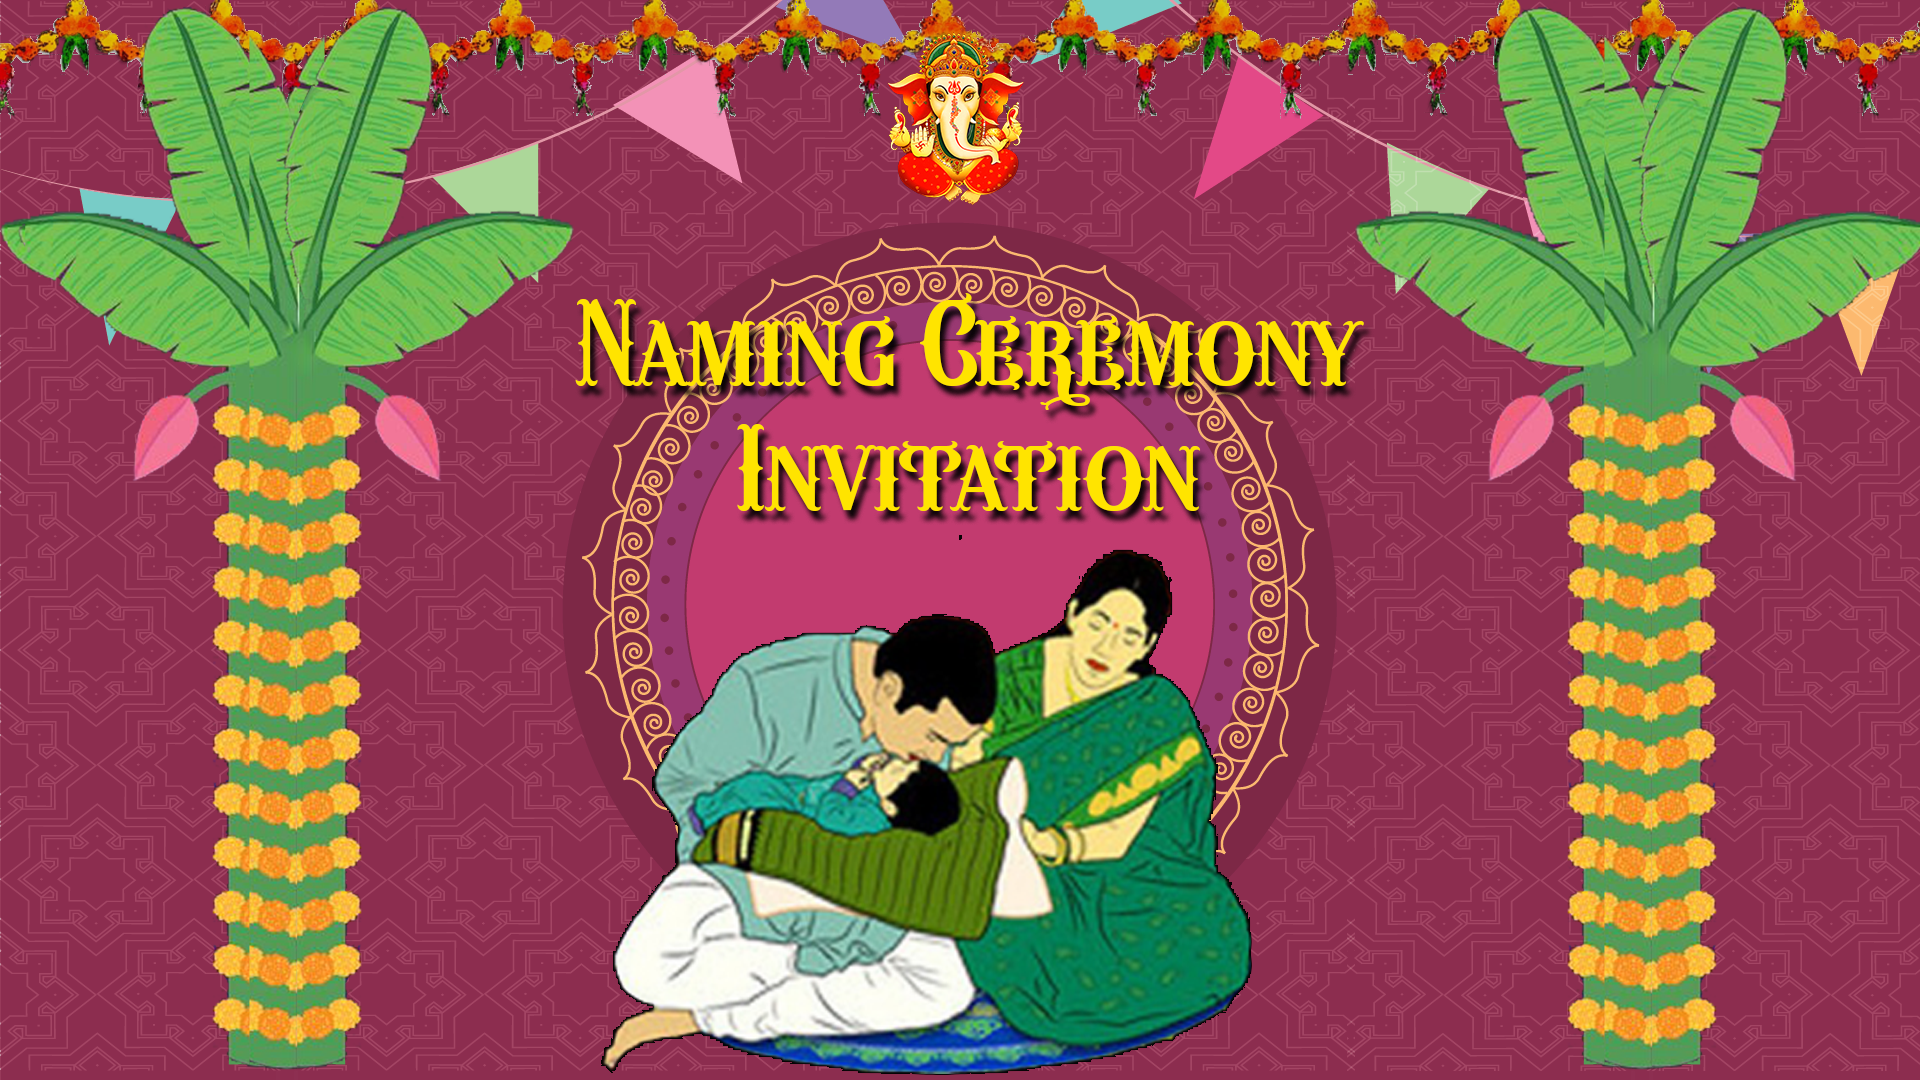 Lord Ganesha Traditional Wedding Invitations – SeeMyMarriage